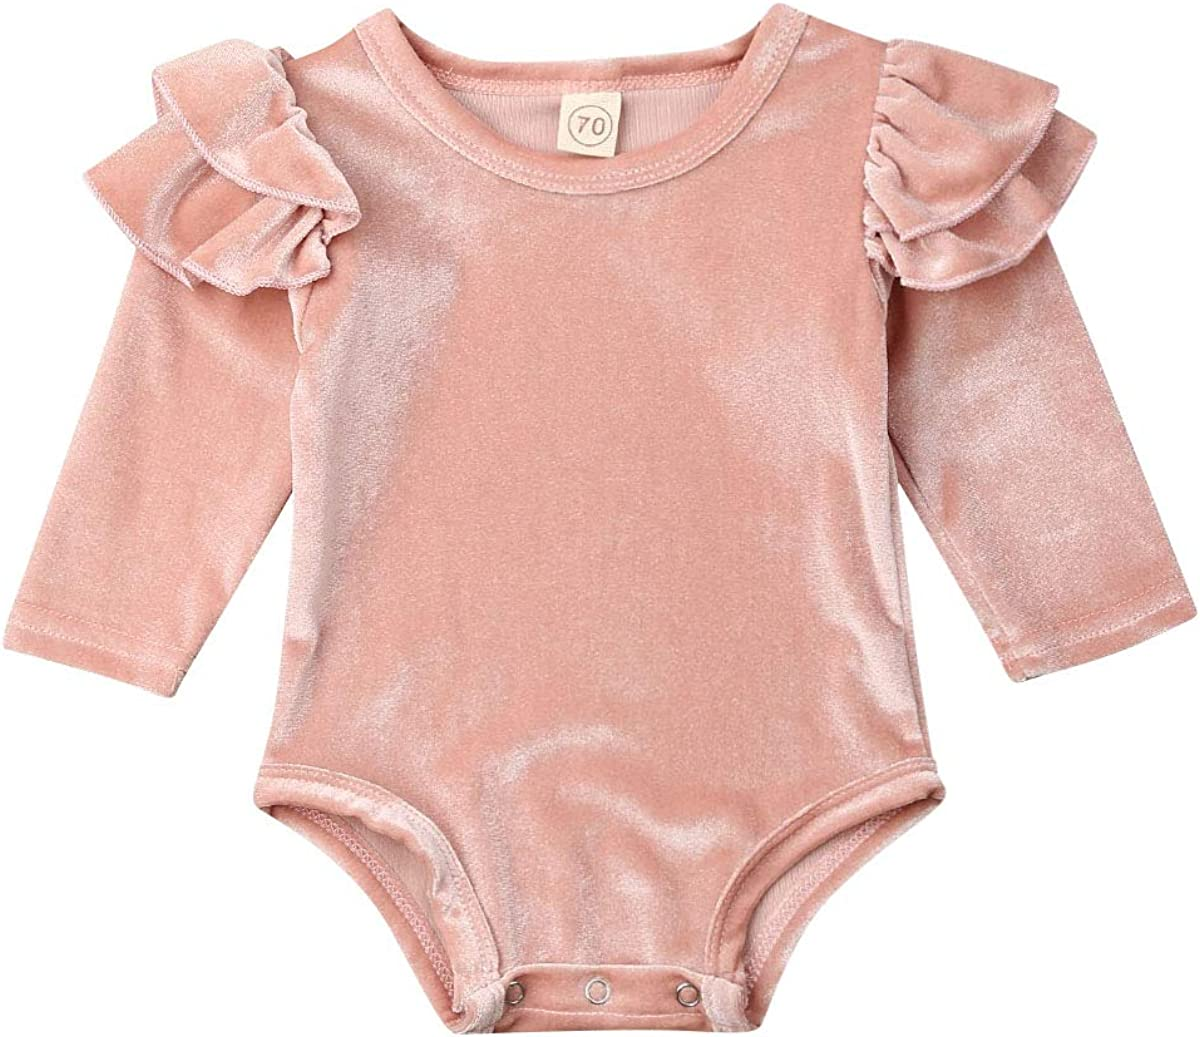 Toddler Baby Girl Velvet Clothes Newborn Long Sleeve Ruffle Bodysuit Solid Pink Romper One-Piece Outfits